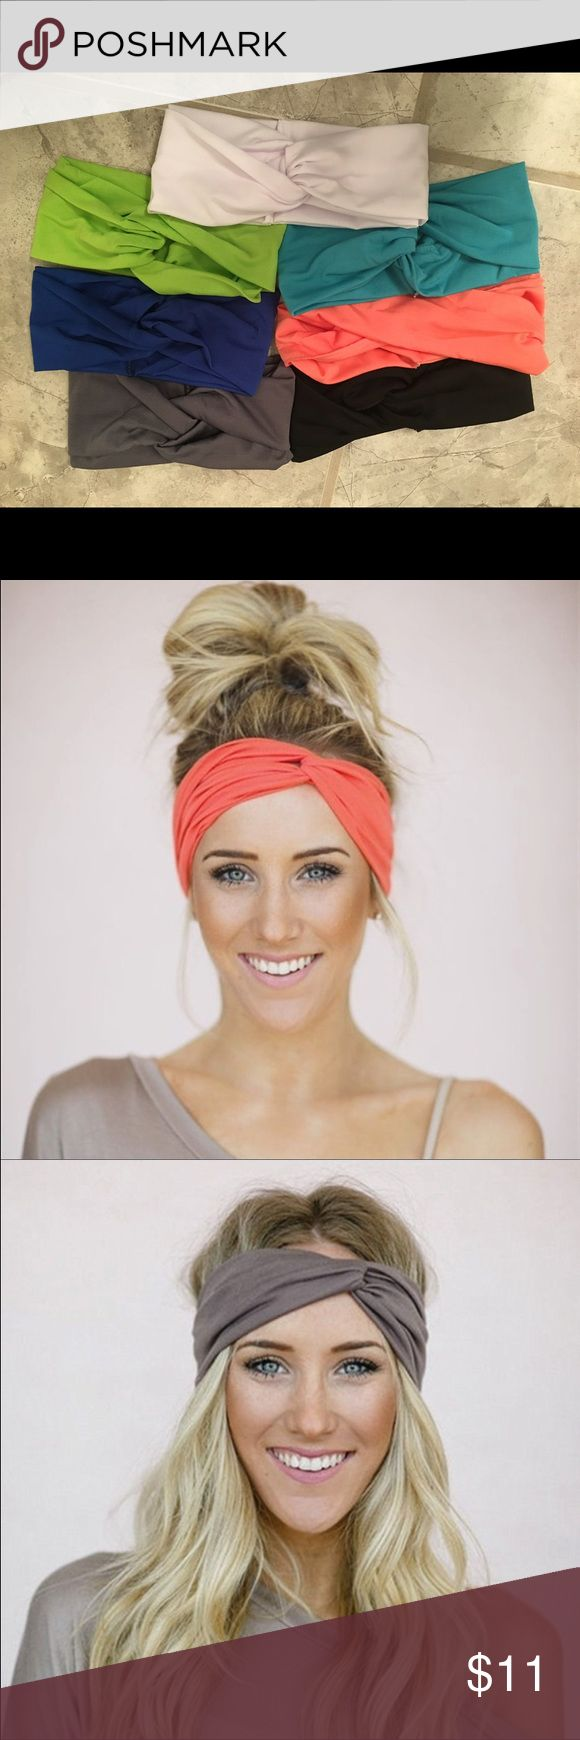 Soft stretch headband wrap Soft and super functional twisted fabric handband. Looks awesome with hair styled up or down. 7 colors available; one of each color shown. Accessories Hair Accessories